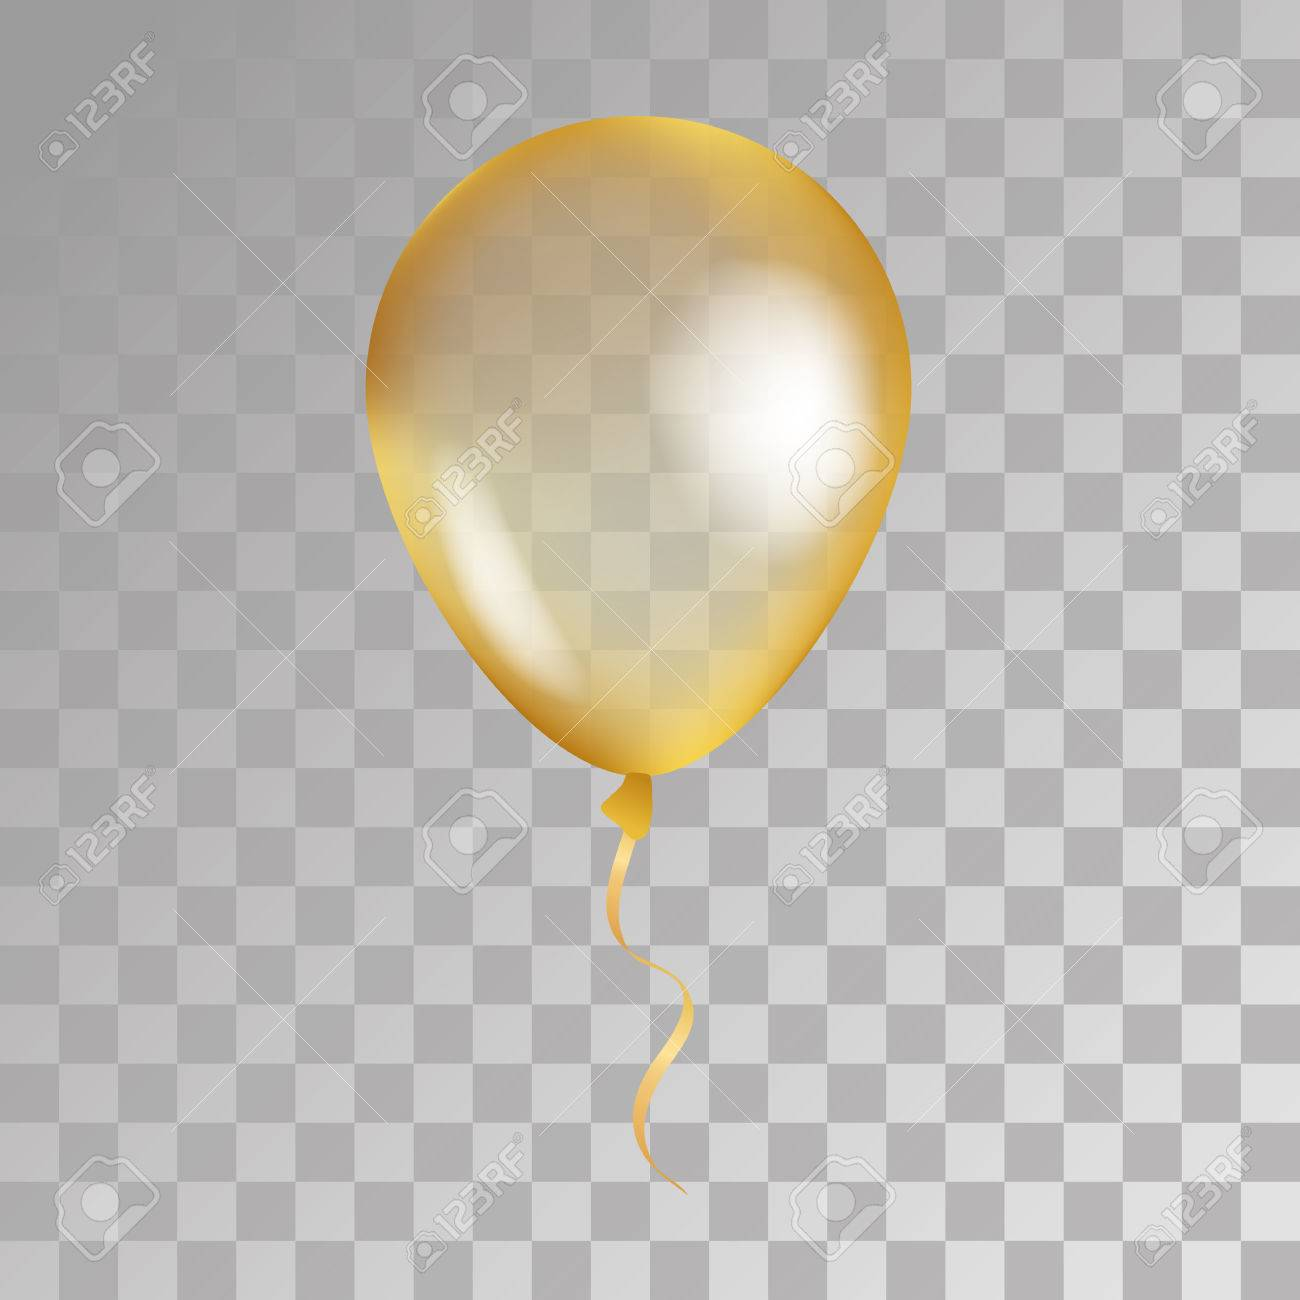 Gold transparent balloon on background. Frosted party balloons for event design. Balloons isolated in the air. Party decorations for birthday, anniversary, celebration. Shine transparent balloon. - 63415798